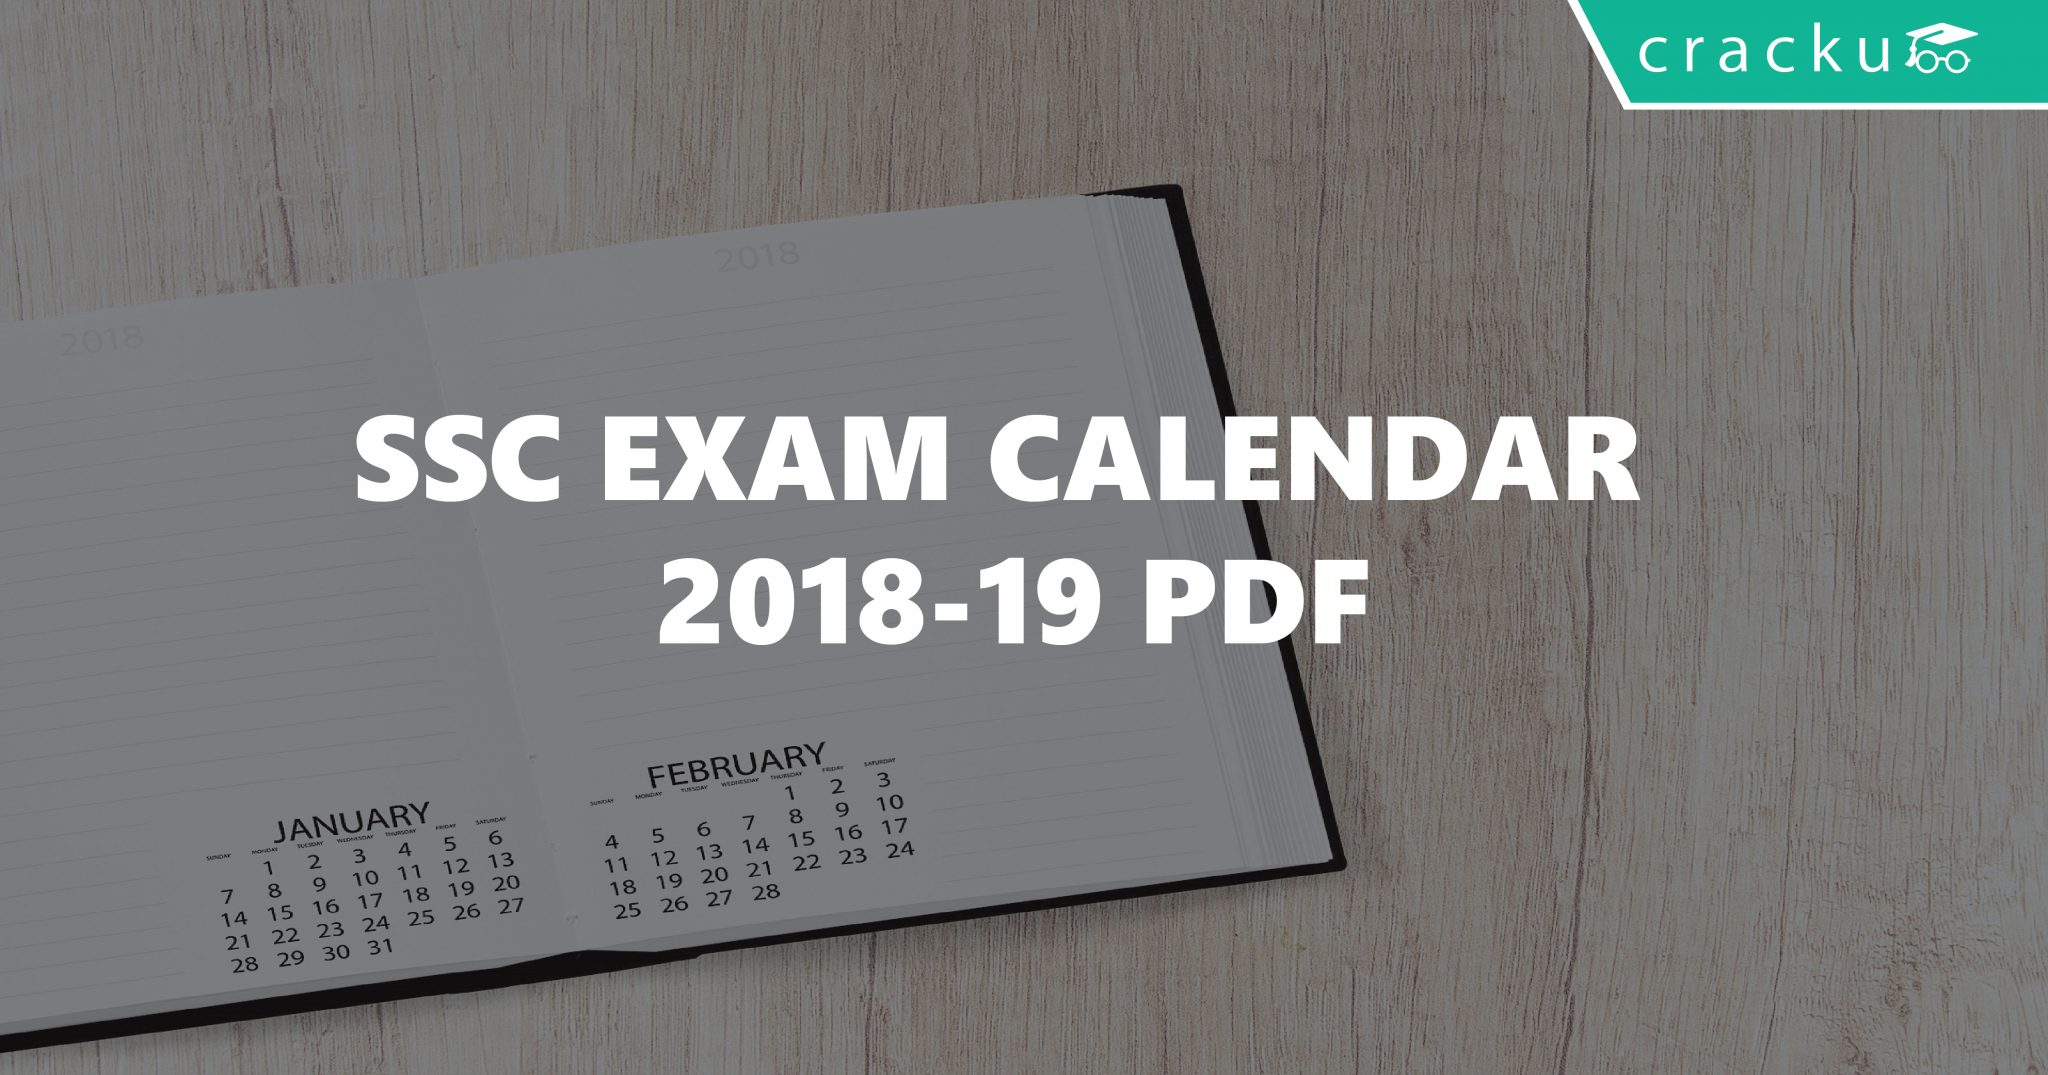 Ssc Year Calendar 2019 With SSC Exam 2018 19 Pdf Revised Cracku